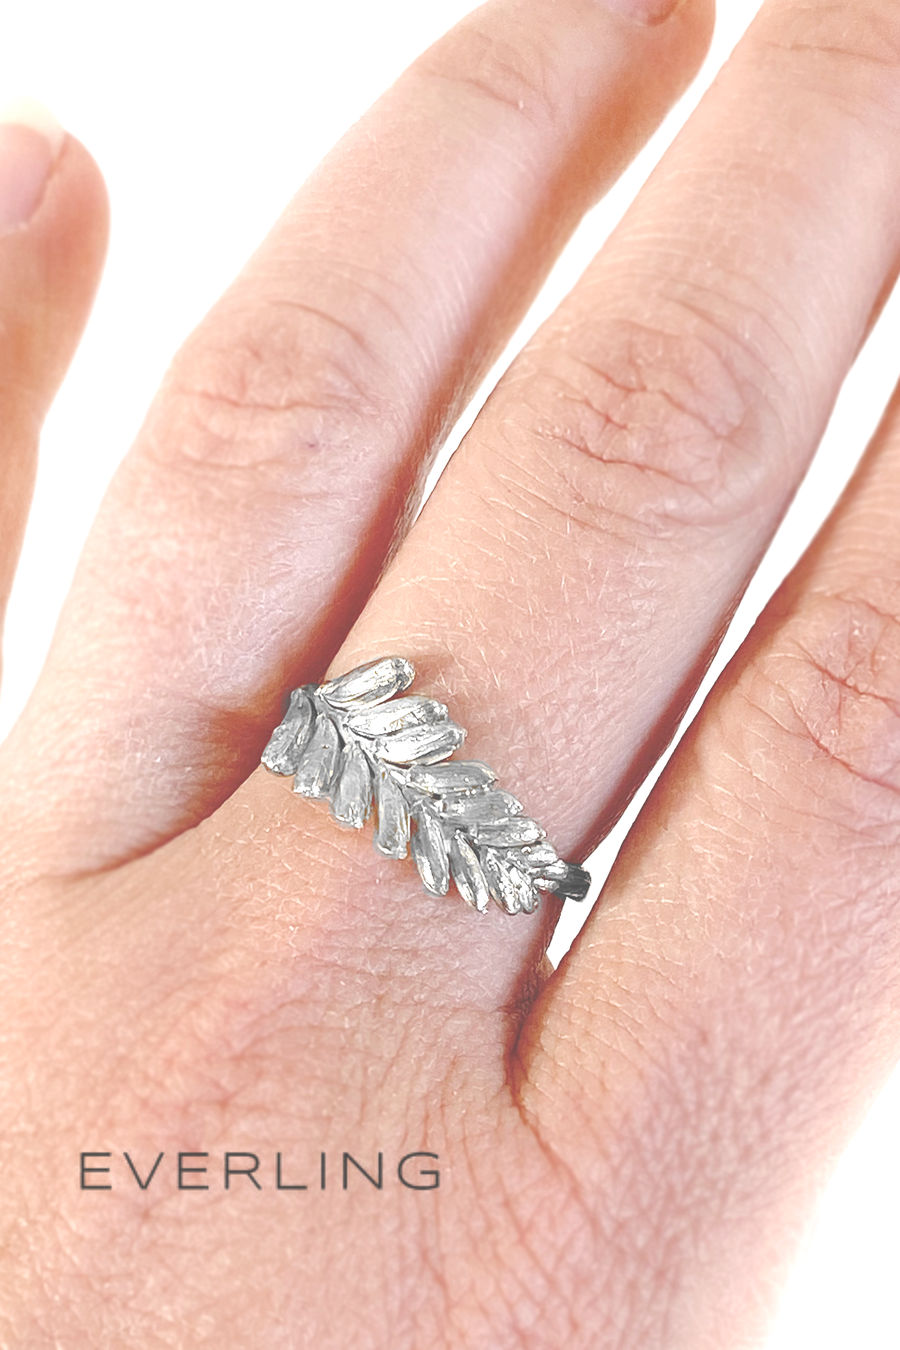 Sterling silver cast crocosmia flower band on the hand